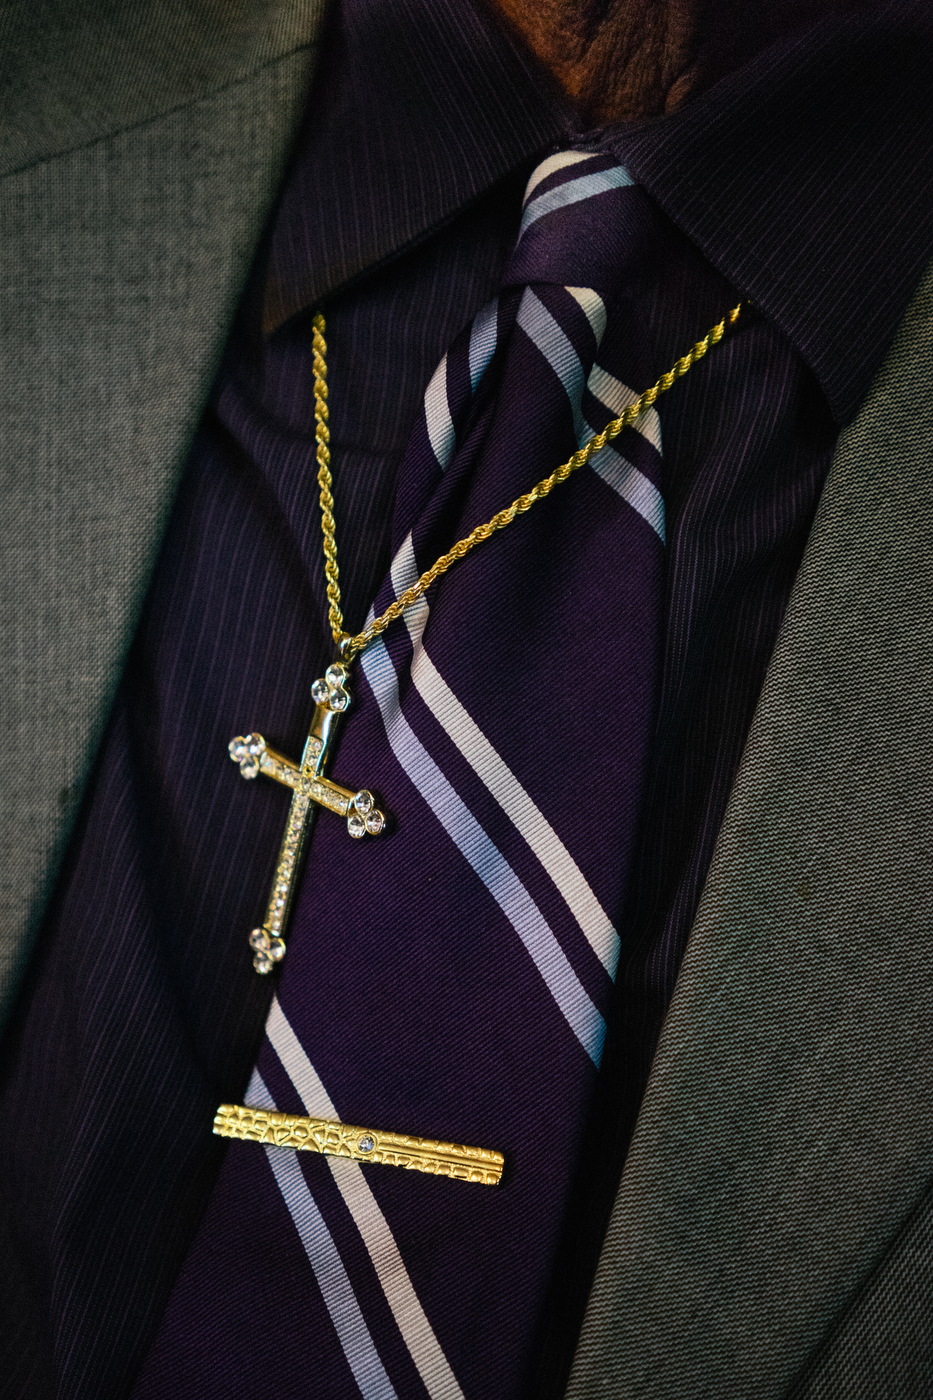 The necktie and jewelry of a visiting pastor at one of the many baptist churches in Ferguson.